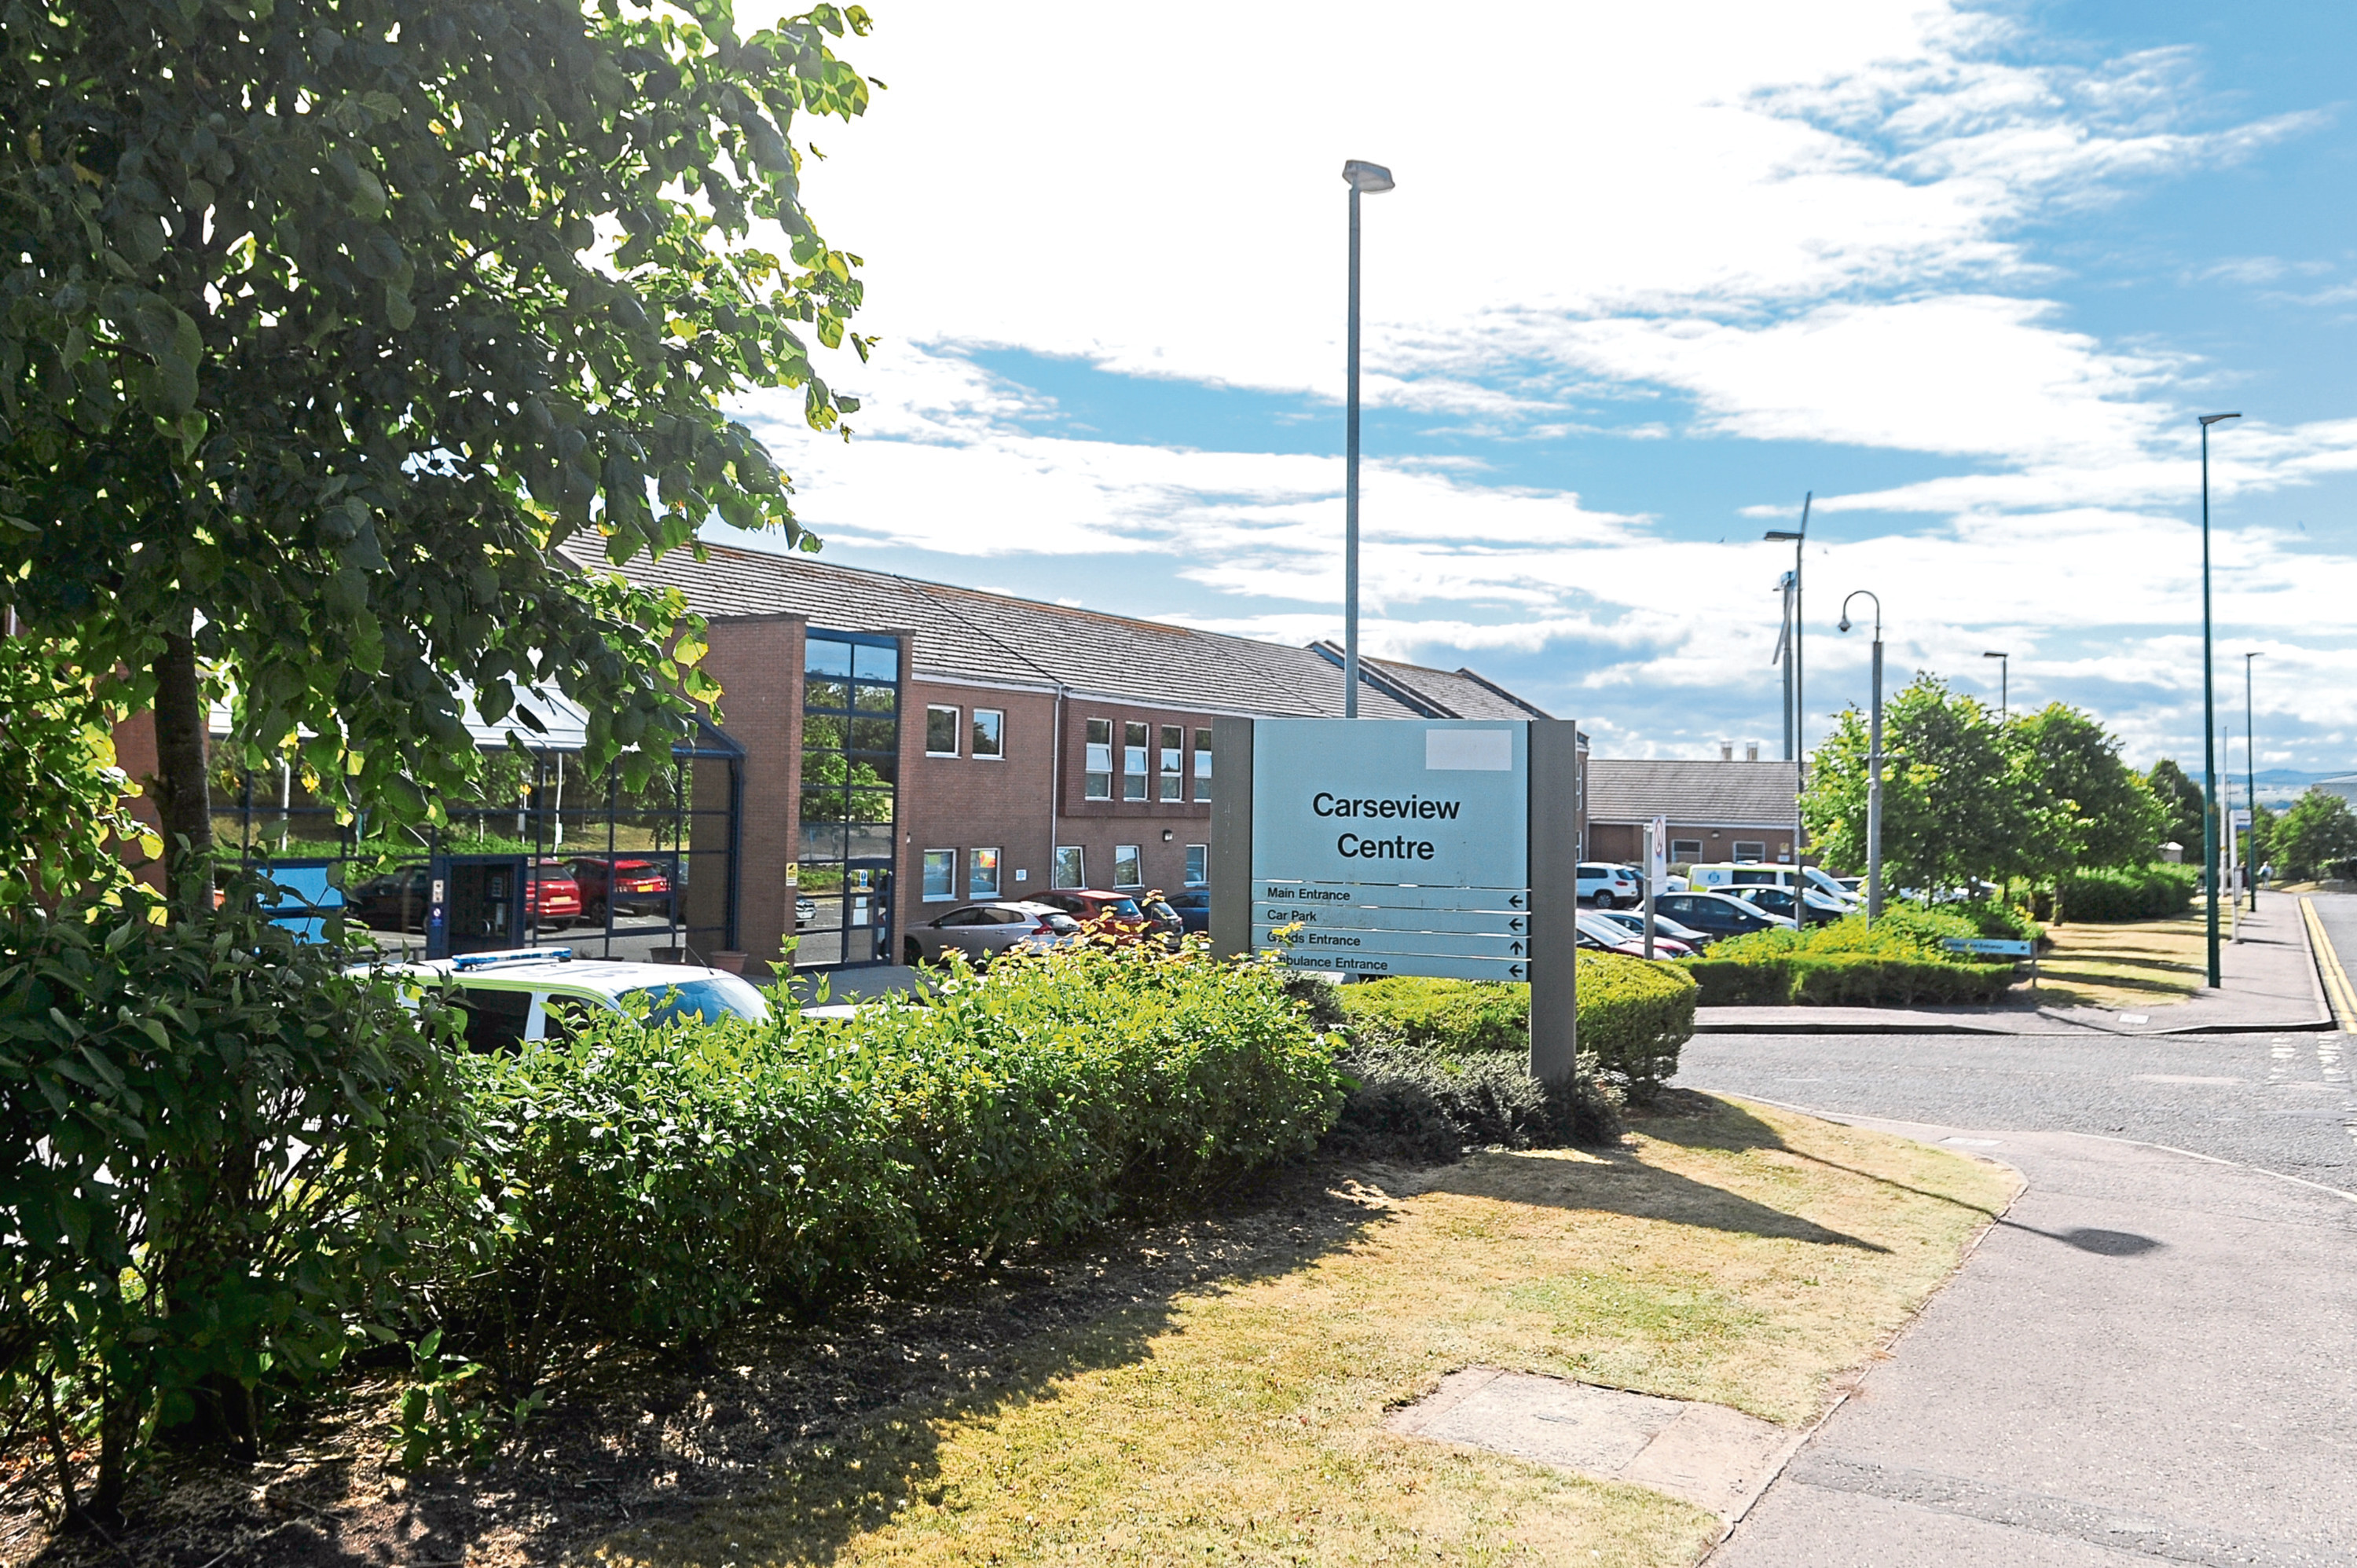 Dundee's Carseview Centre, one of NHS Tayside's mental health facilities.